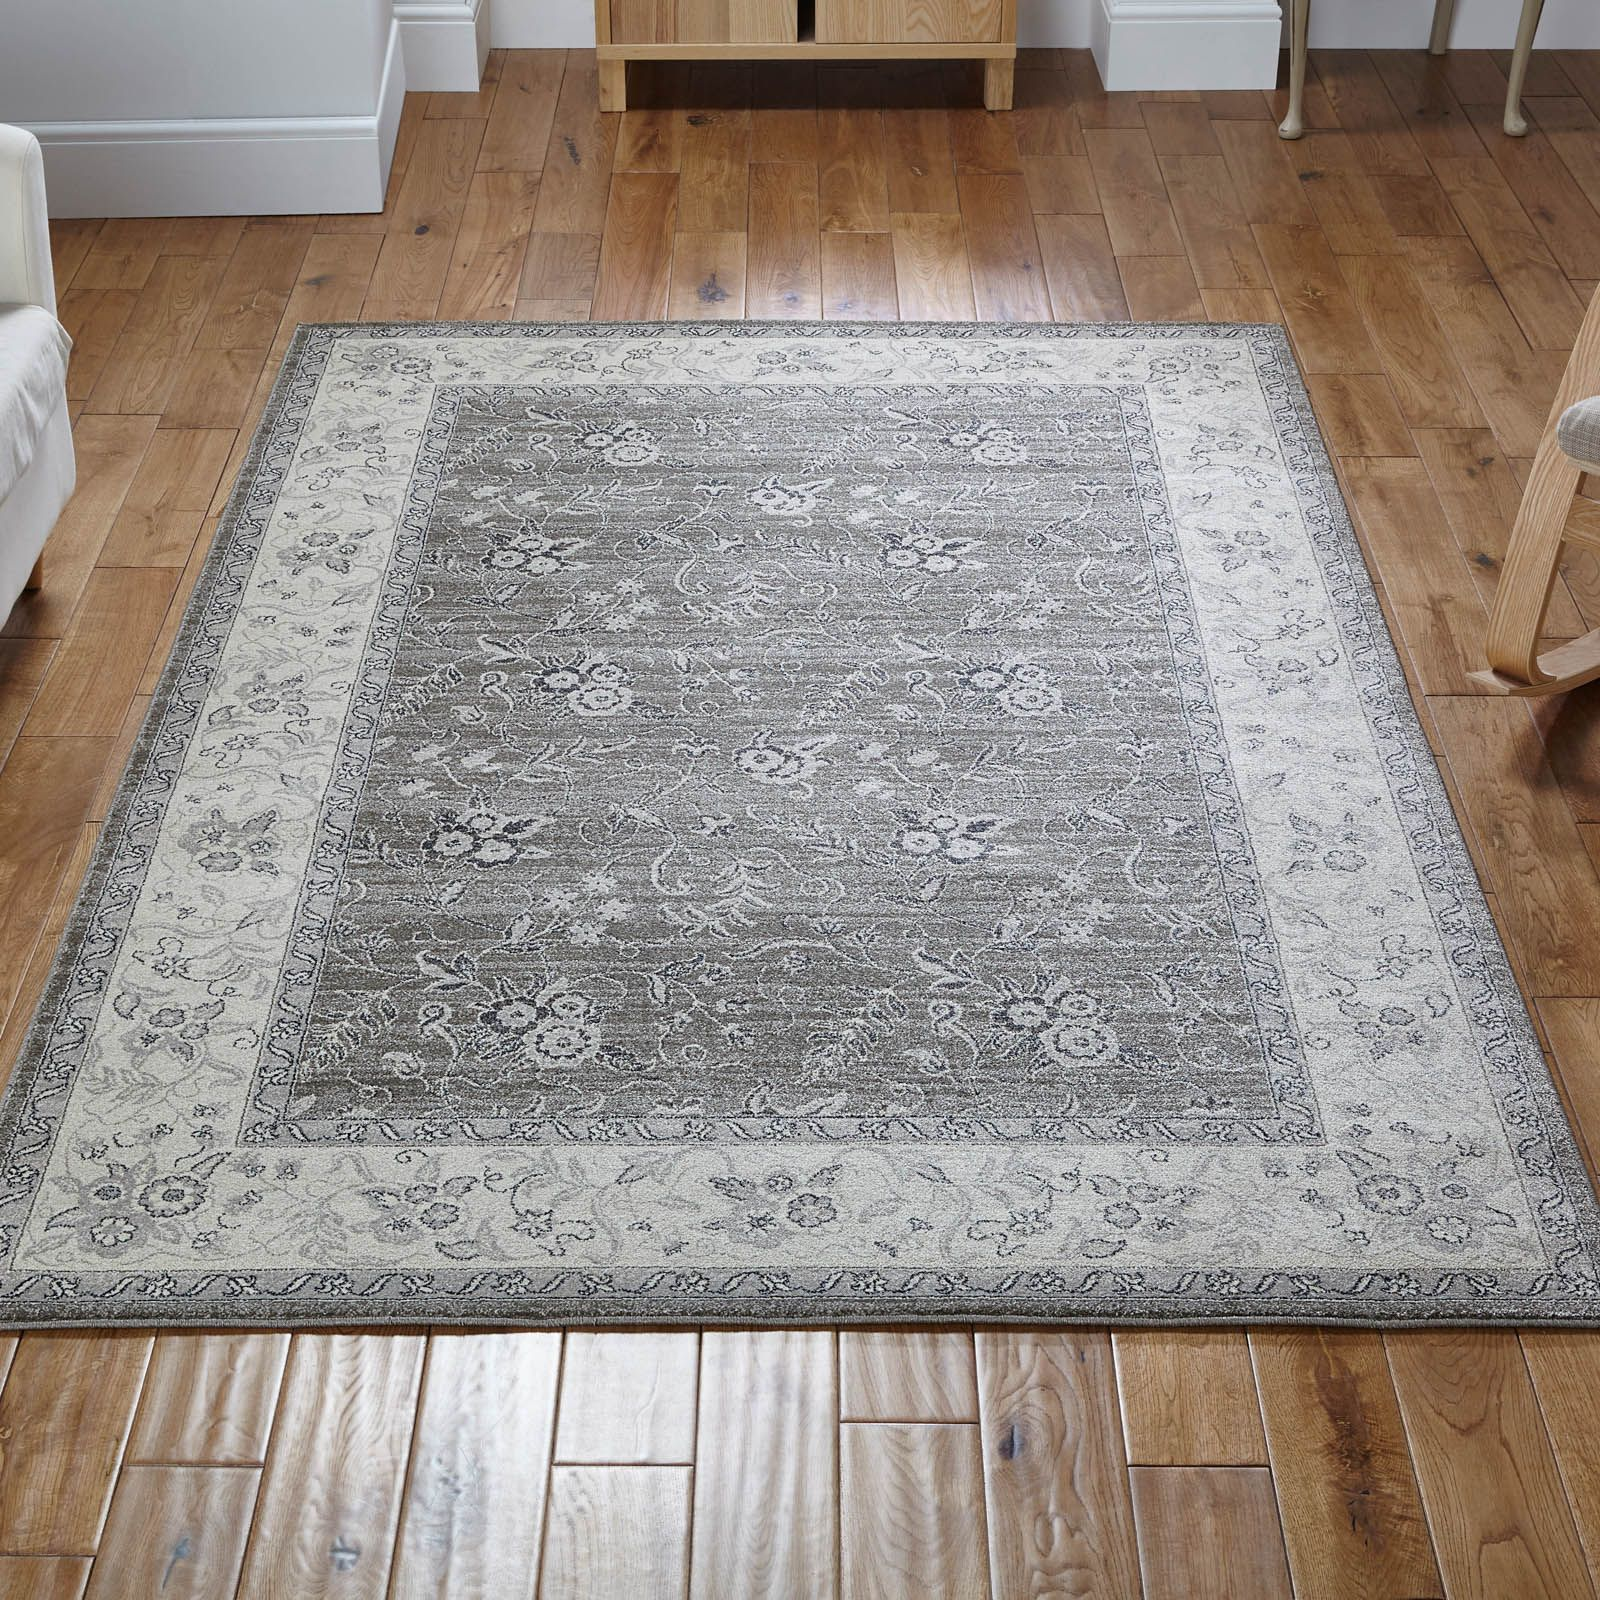 These Beautiful Rugs Are Durable Easy